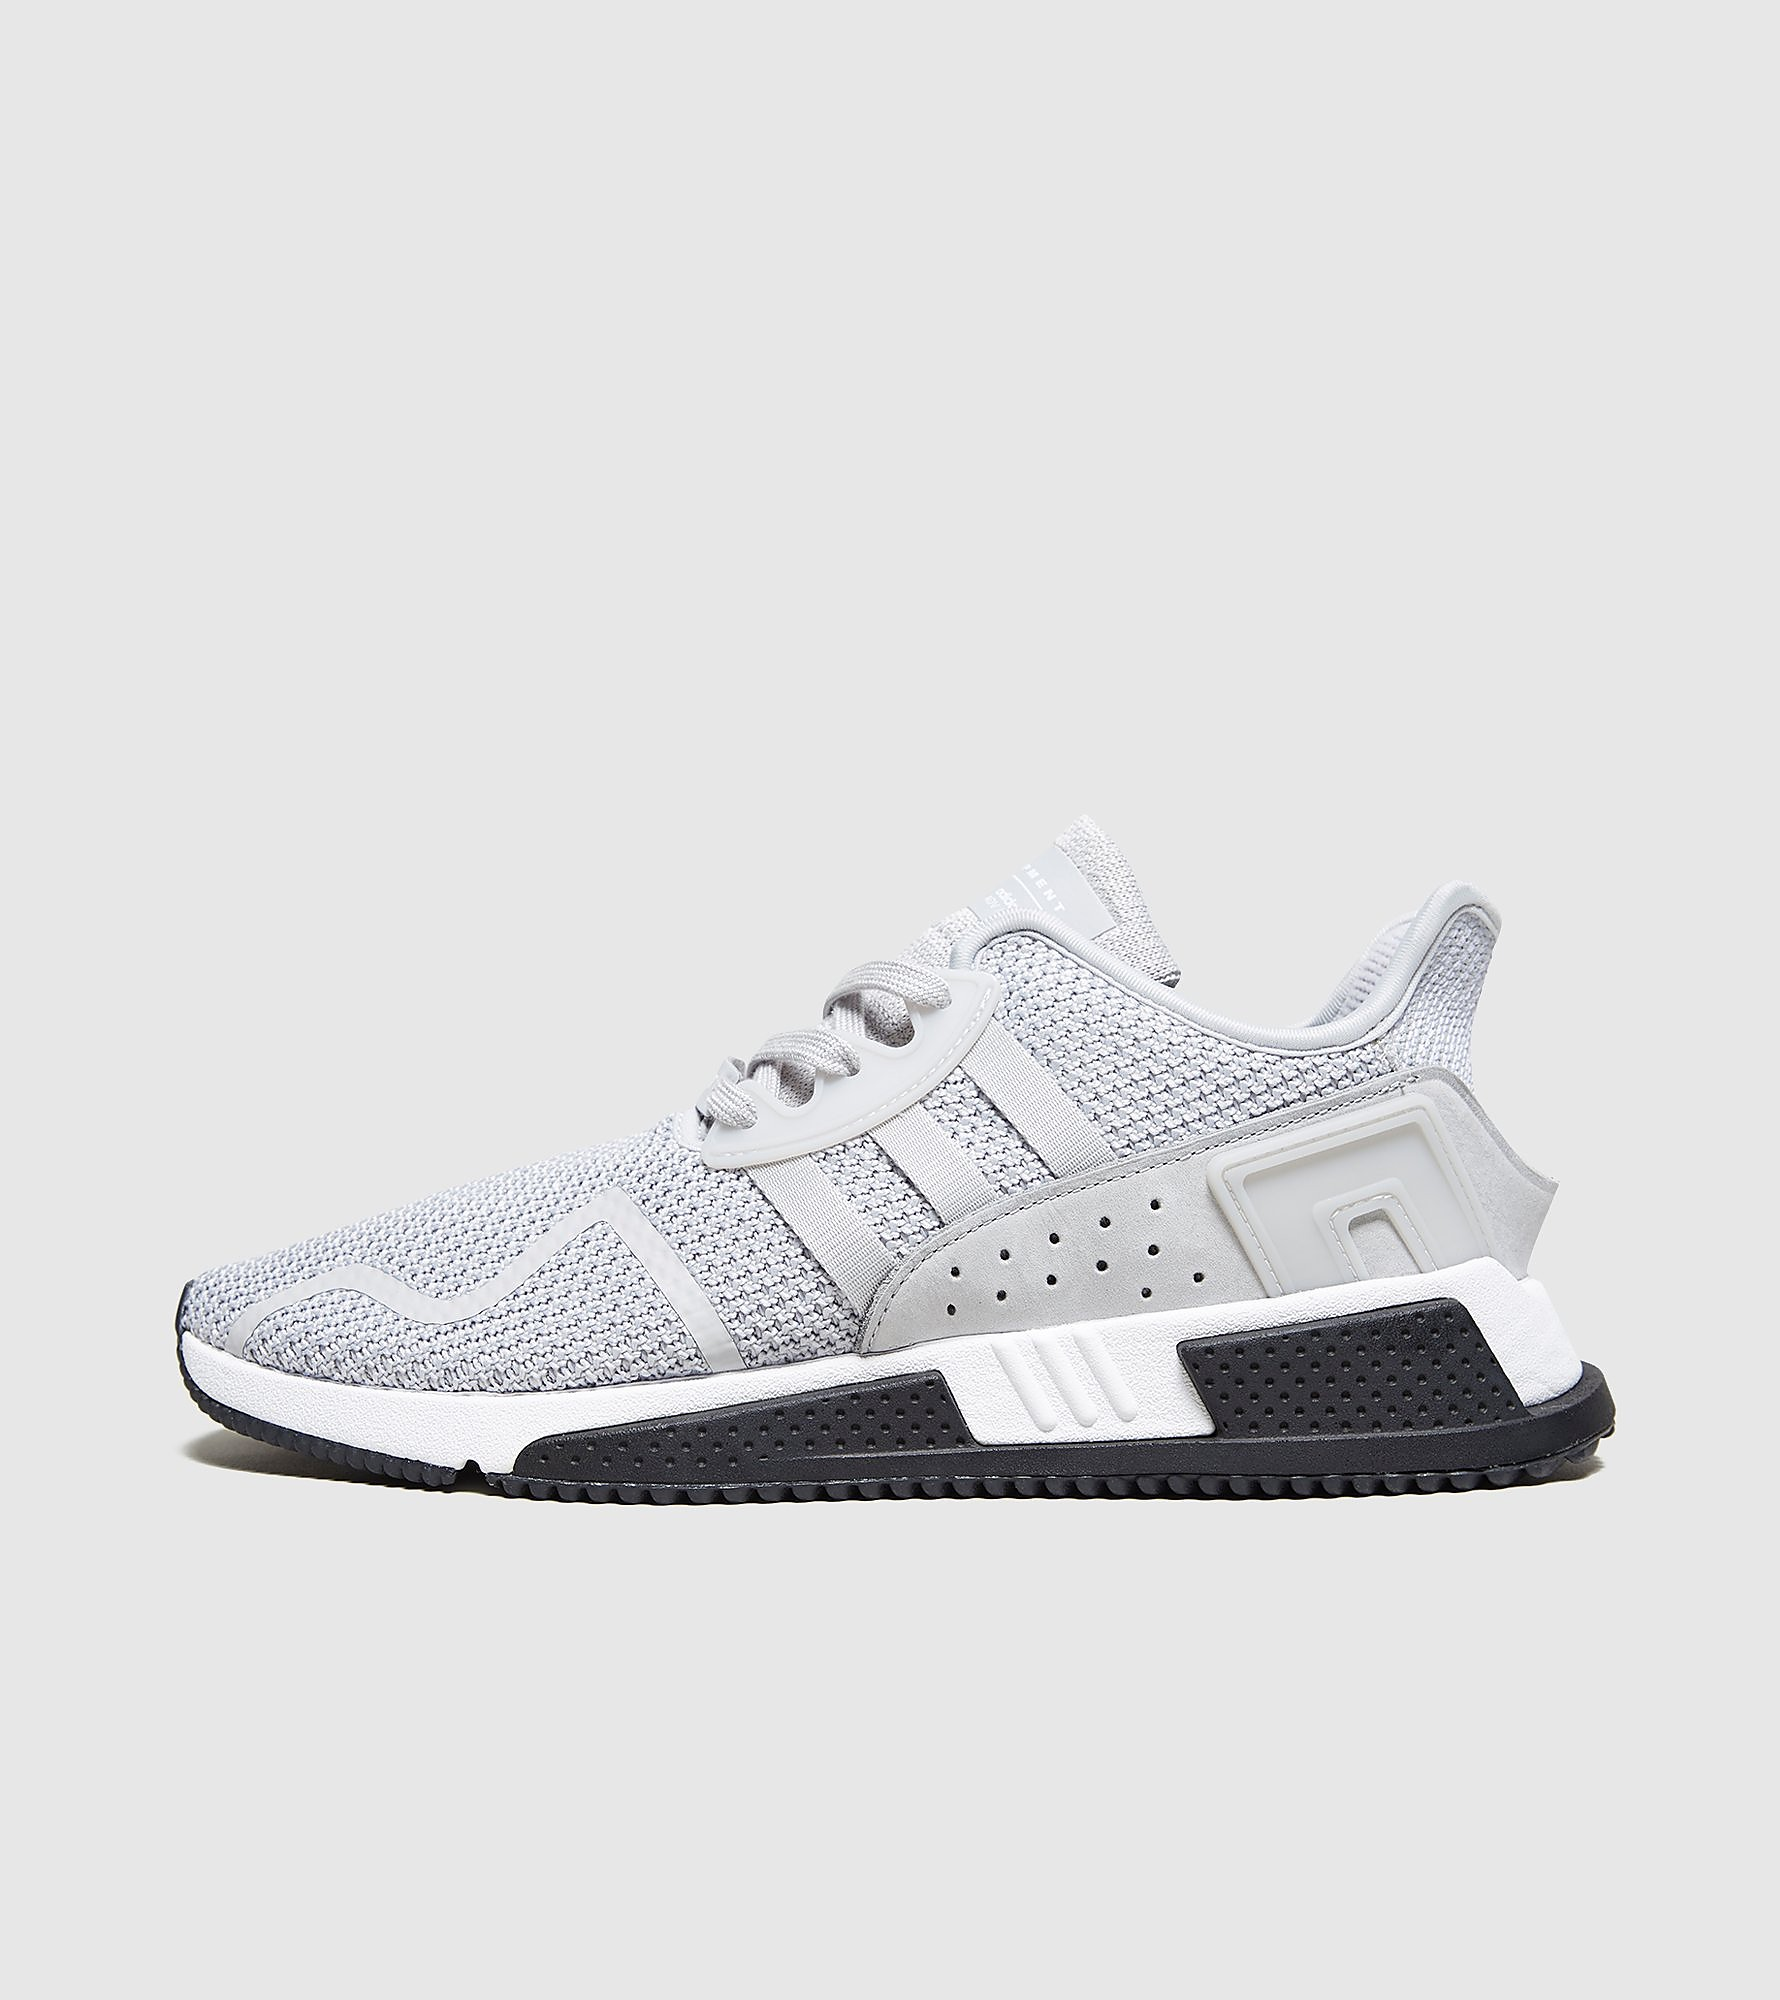 adidas Originals EQT Cushion ADV - Exclusivité size?